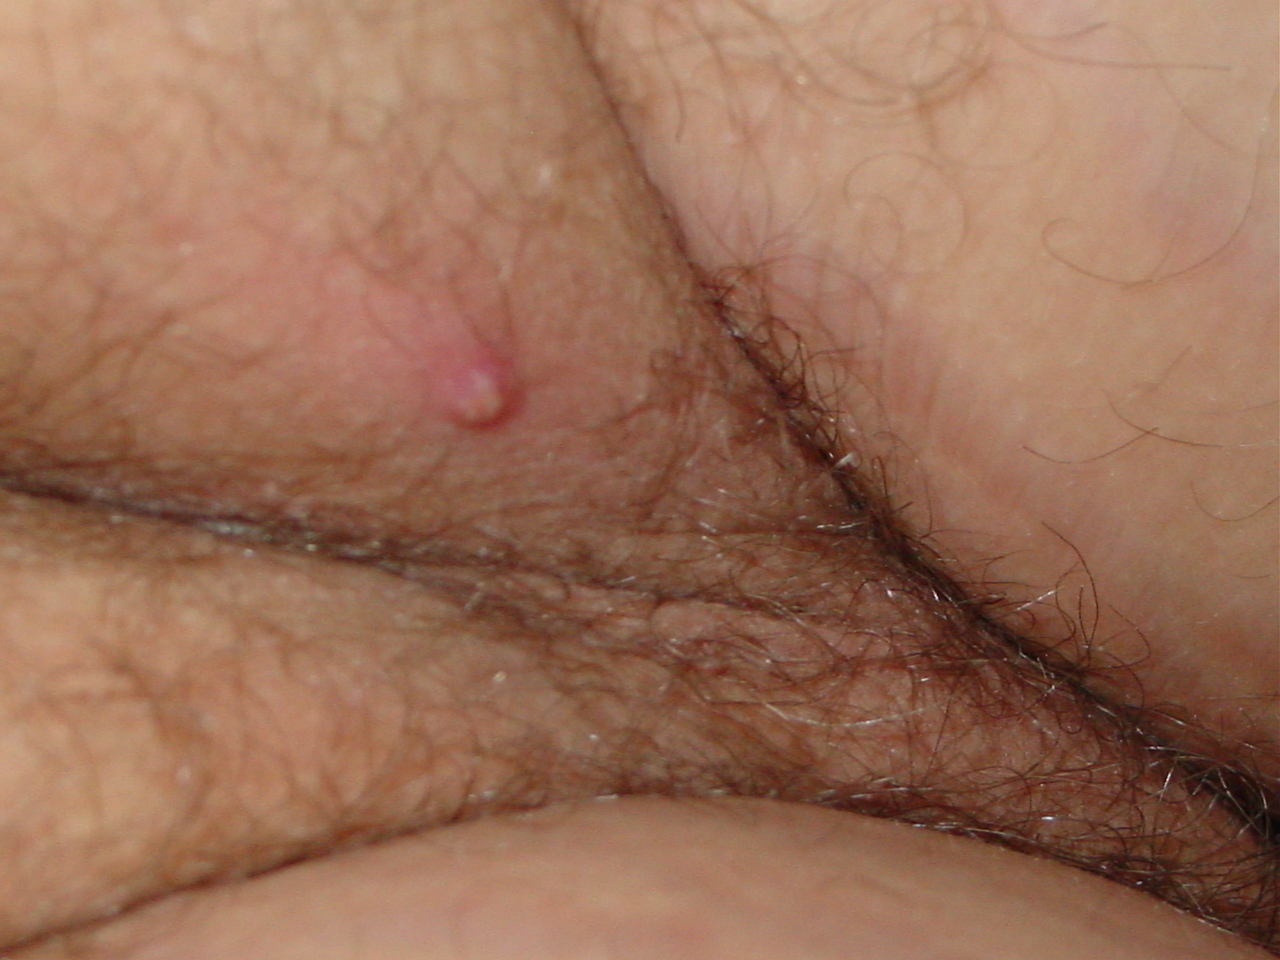 Genital Warts Pictures and photos - STD Information